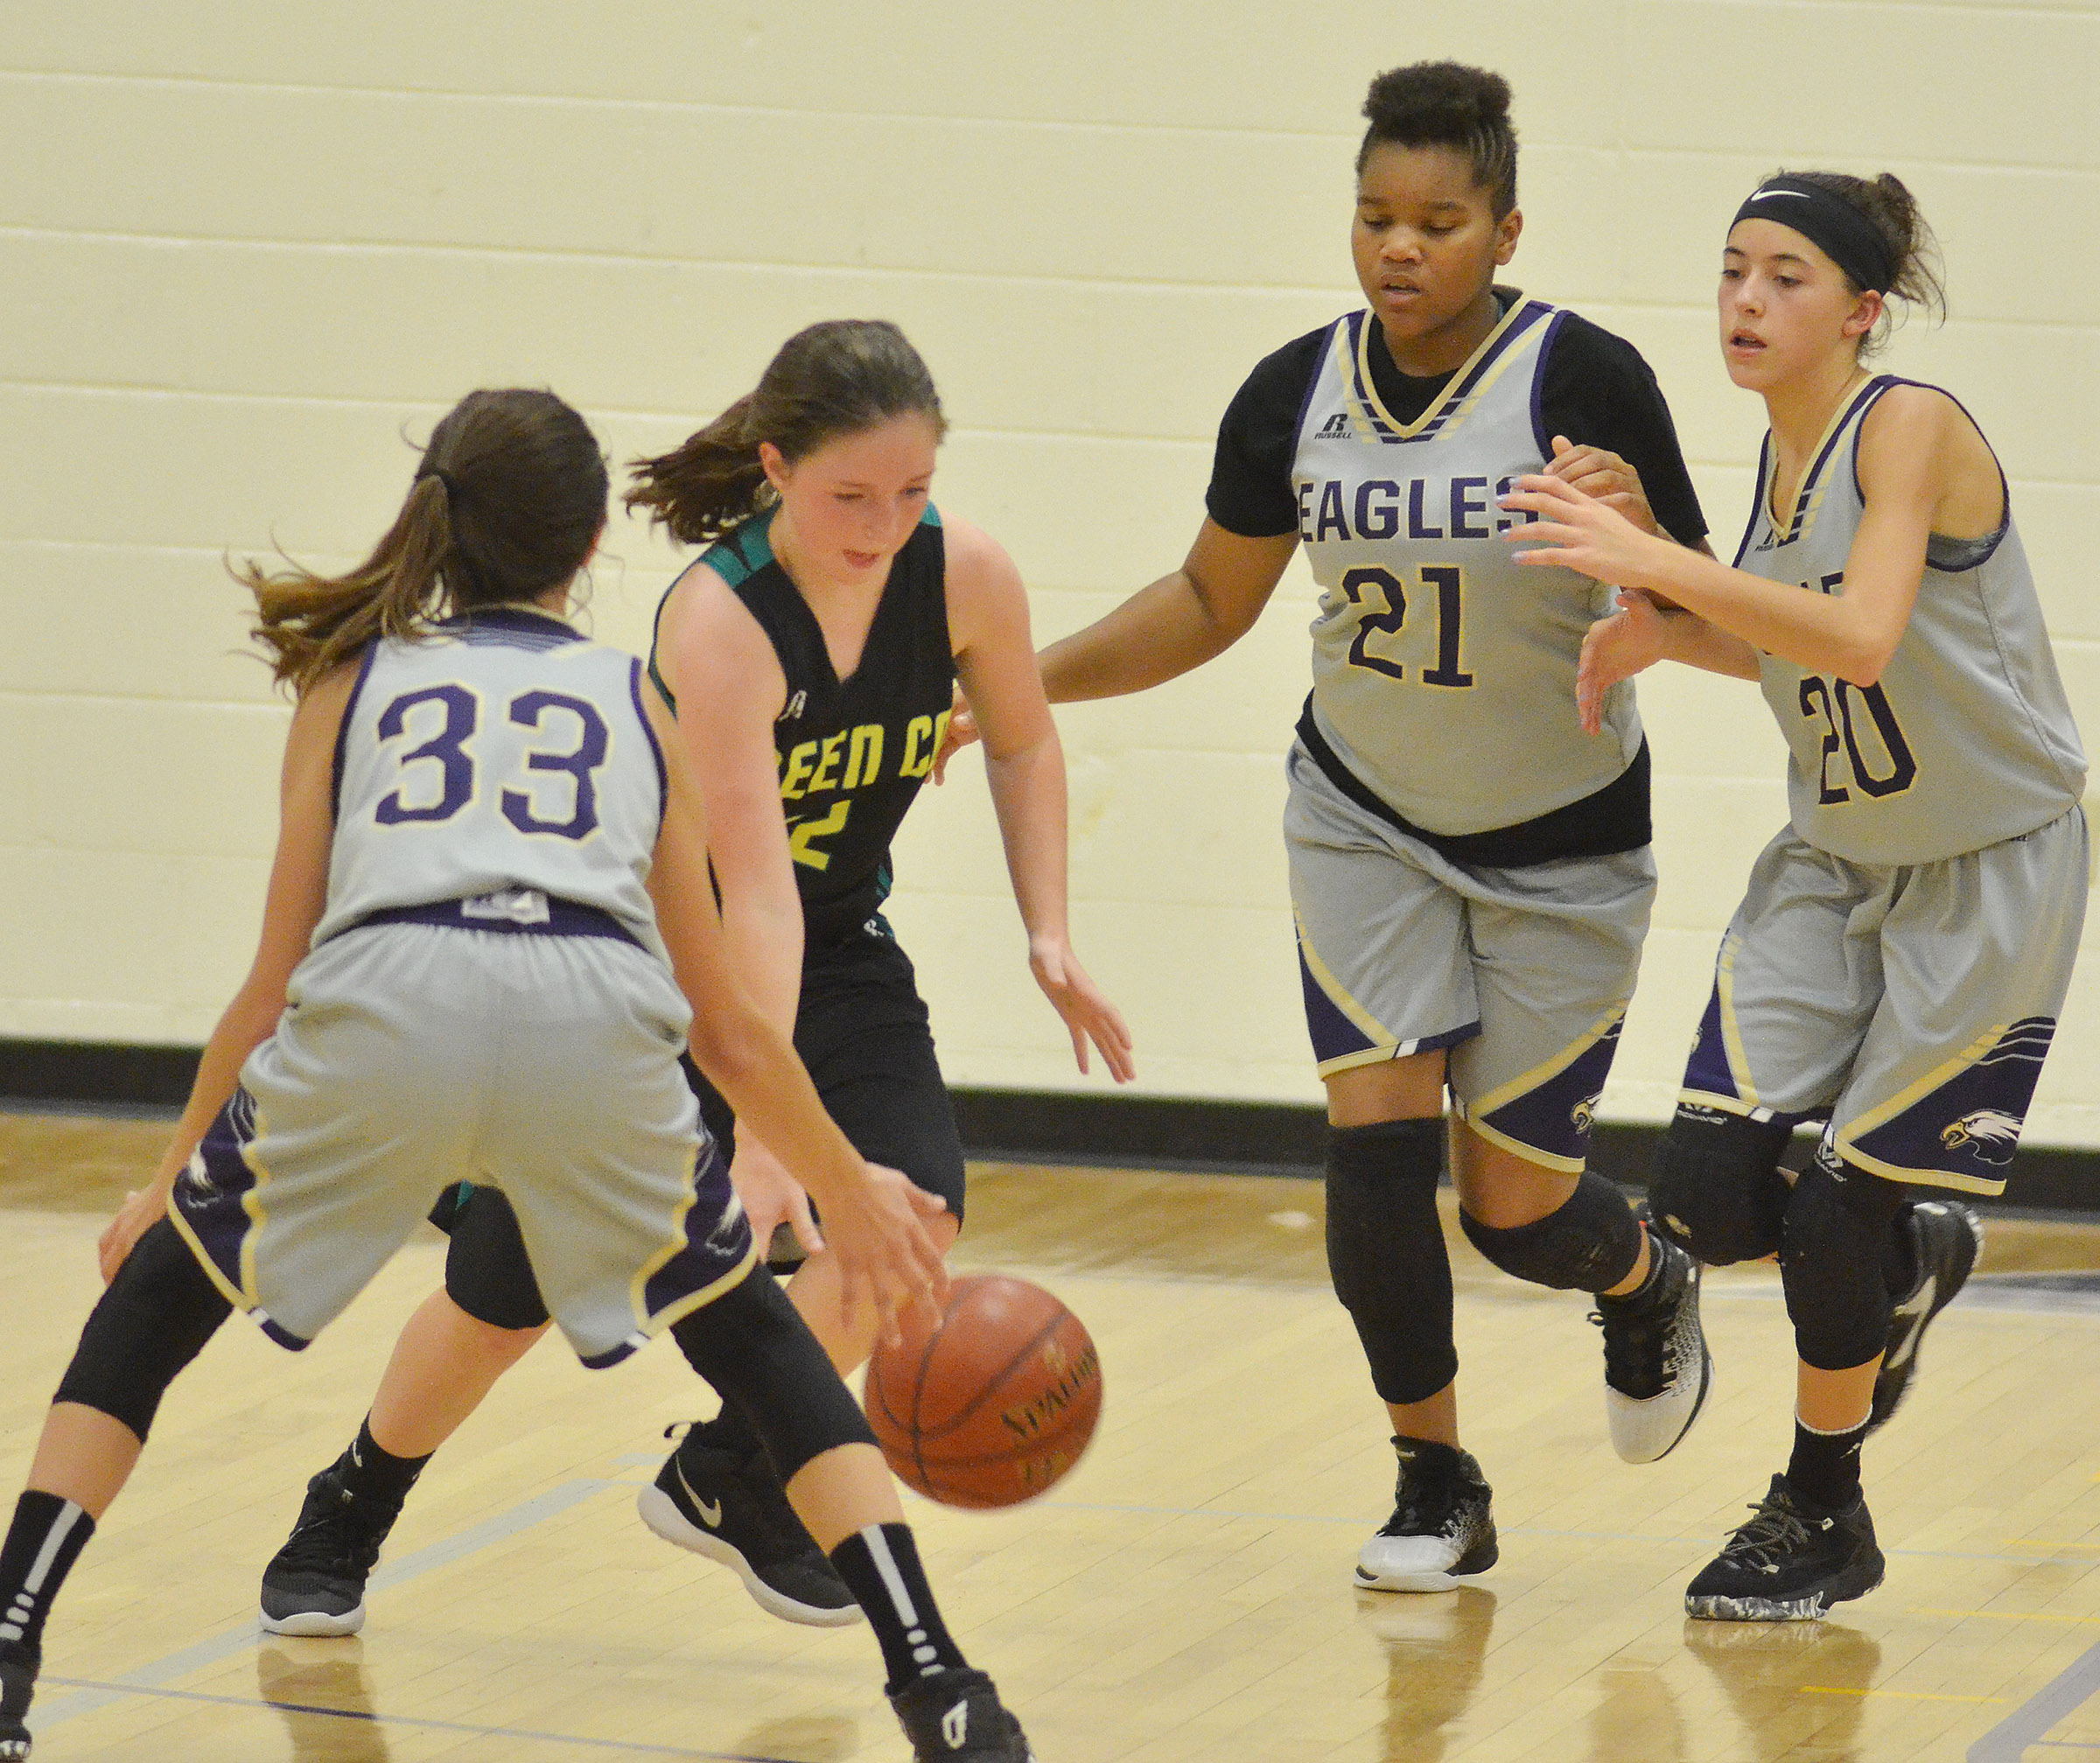 CMS seventh-graders Bri Hayes, at left, and Antaya Epps, at right, and eighth-grader Kaylyn Smith play defense.